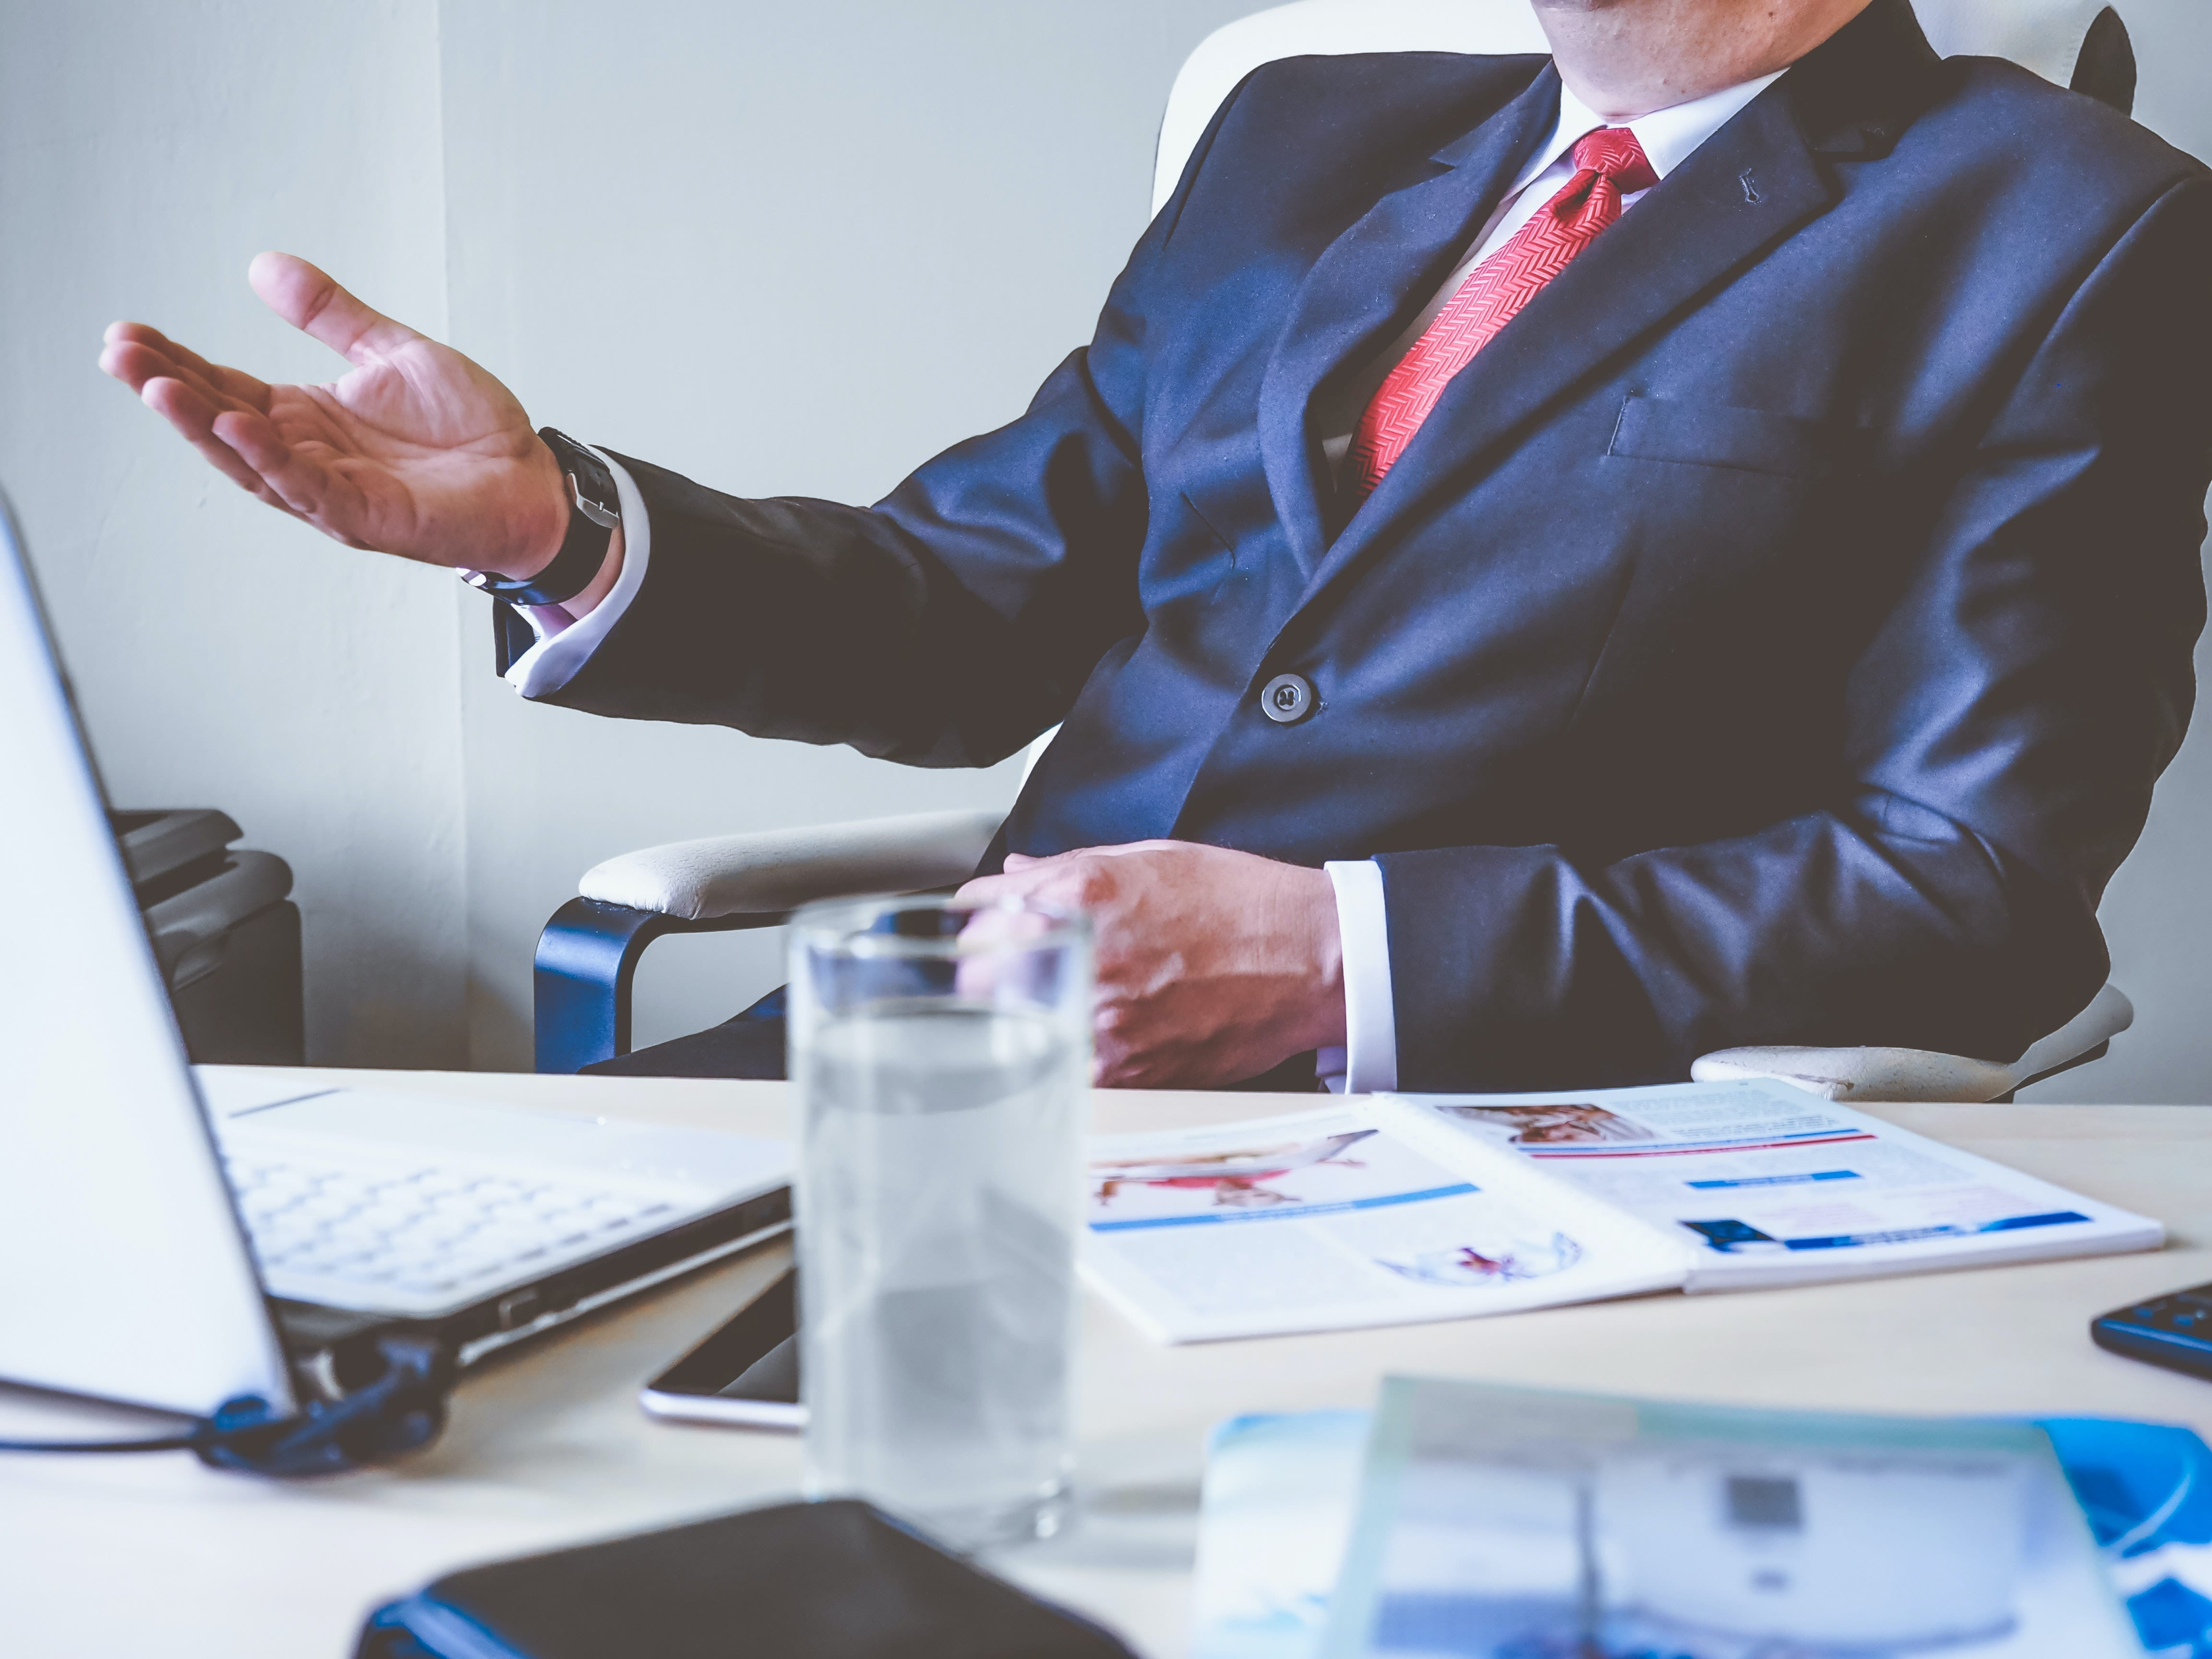 man in suit raising right hand in office environment